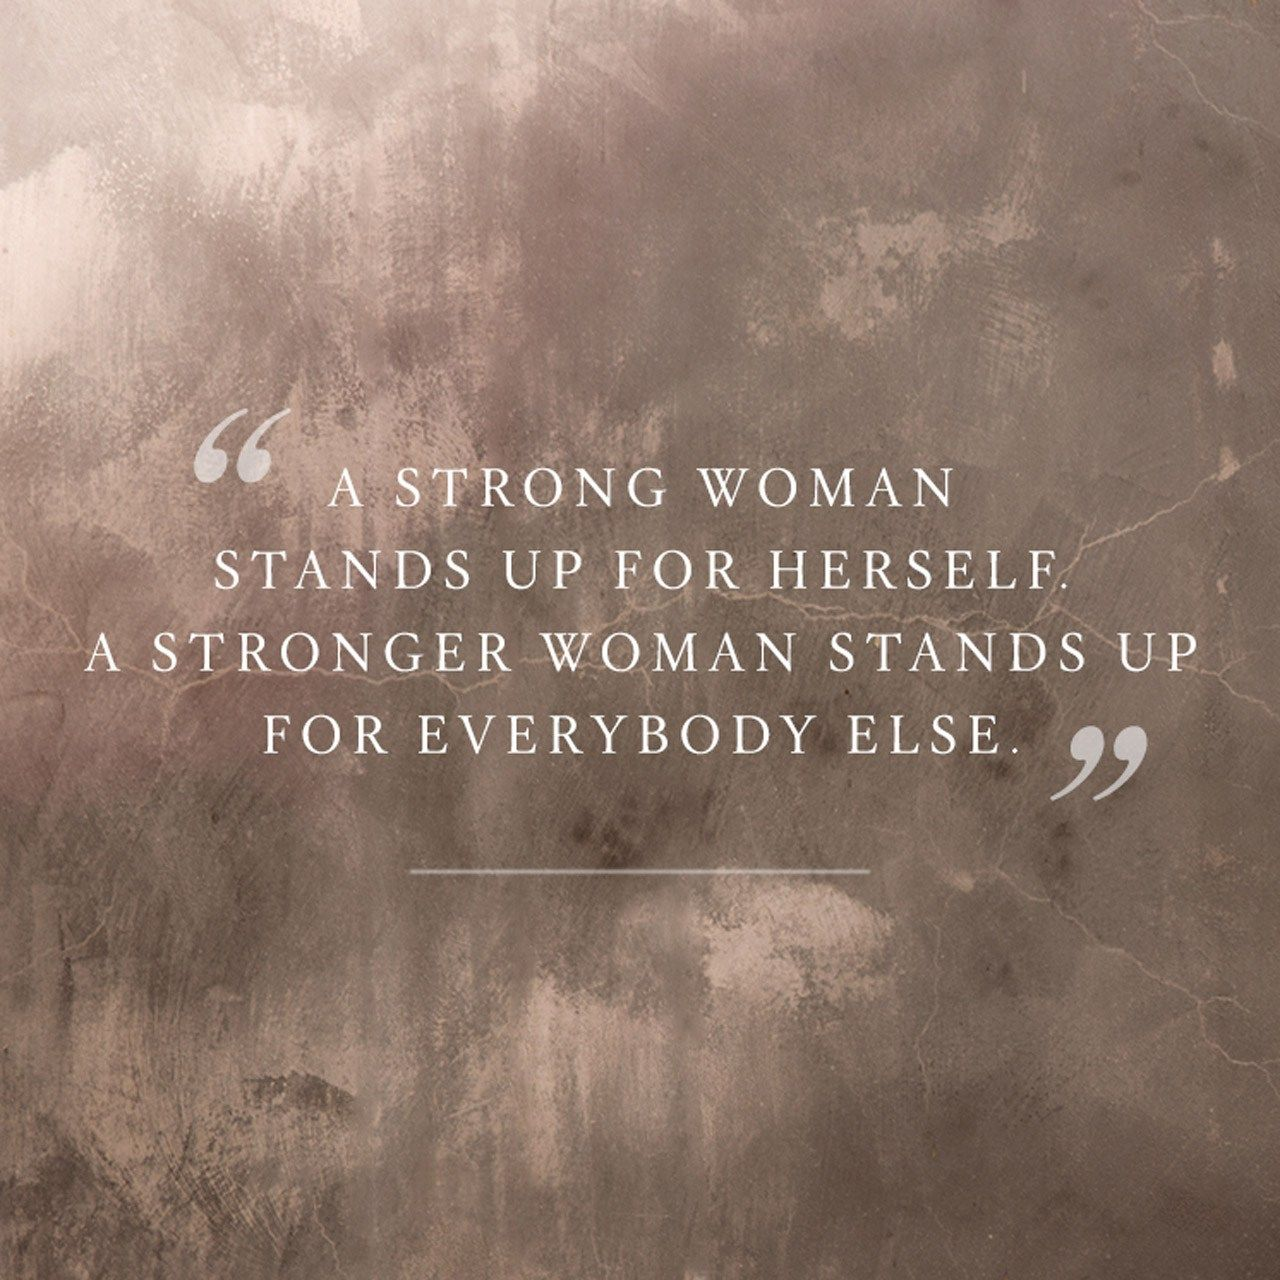 A Strong Woman Stands Up For Herself A Stronger Woman Stands Up For Everybody Else True Leaders Empowerment Quotes Leadership Quotes Strong Women Quotes